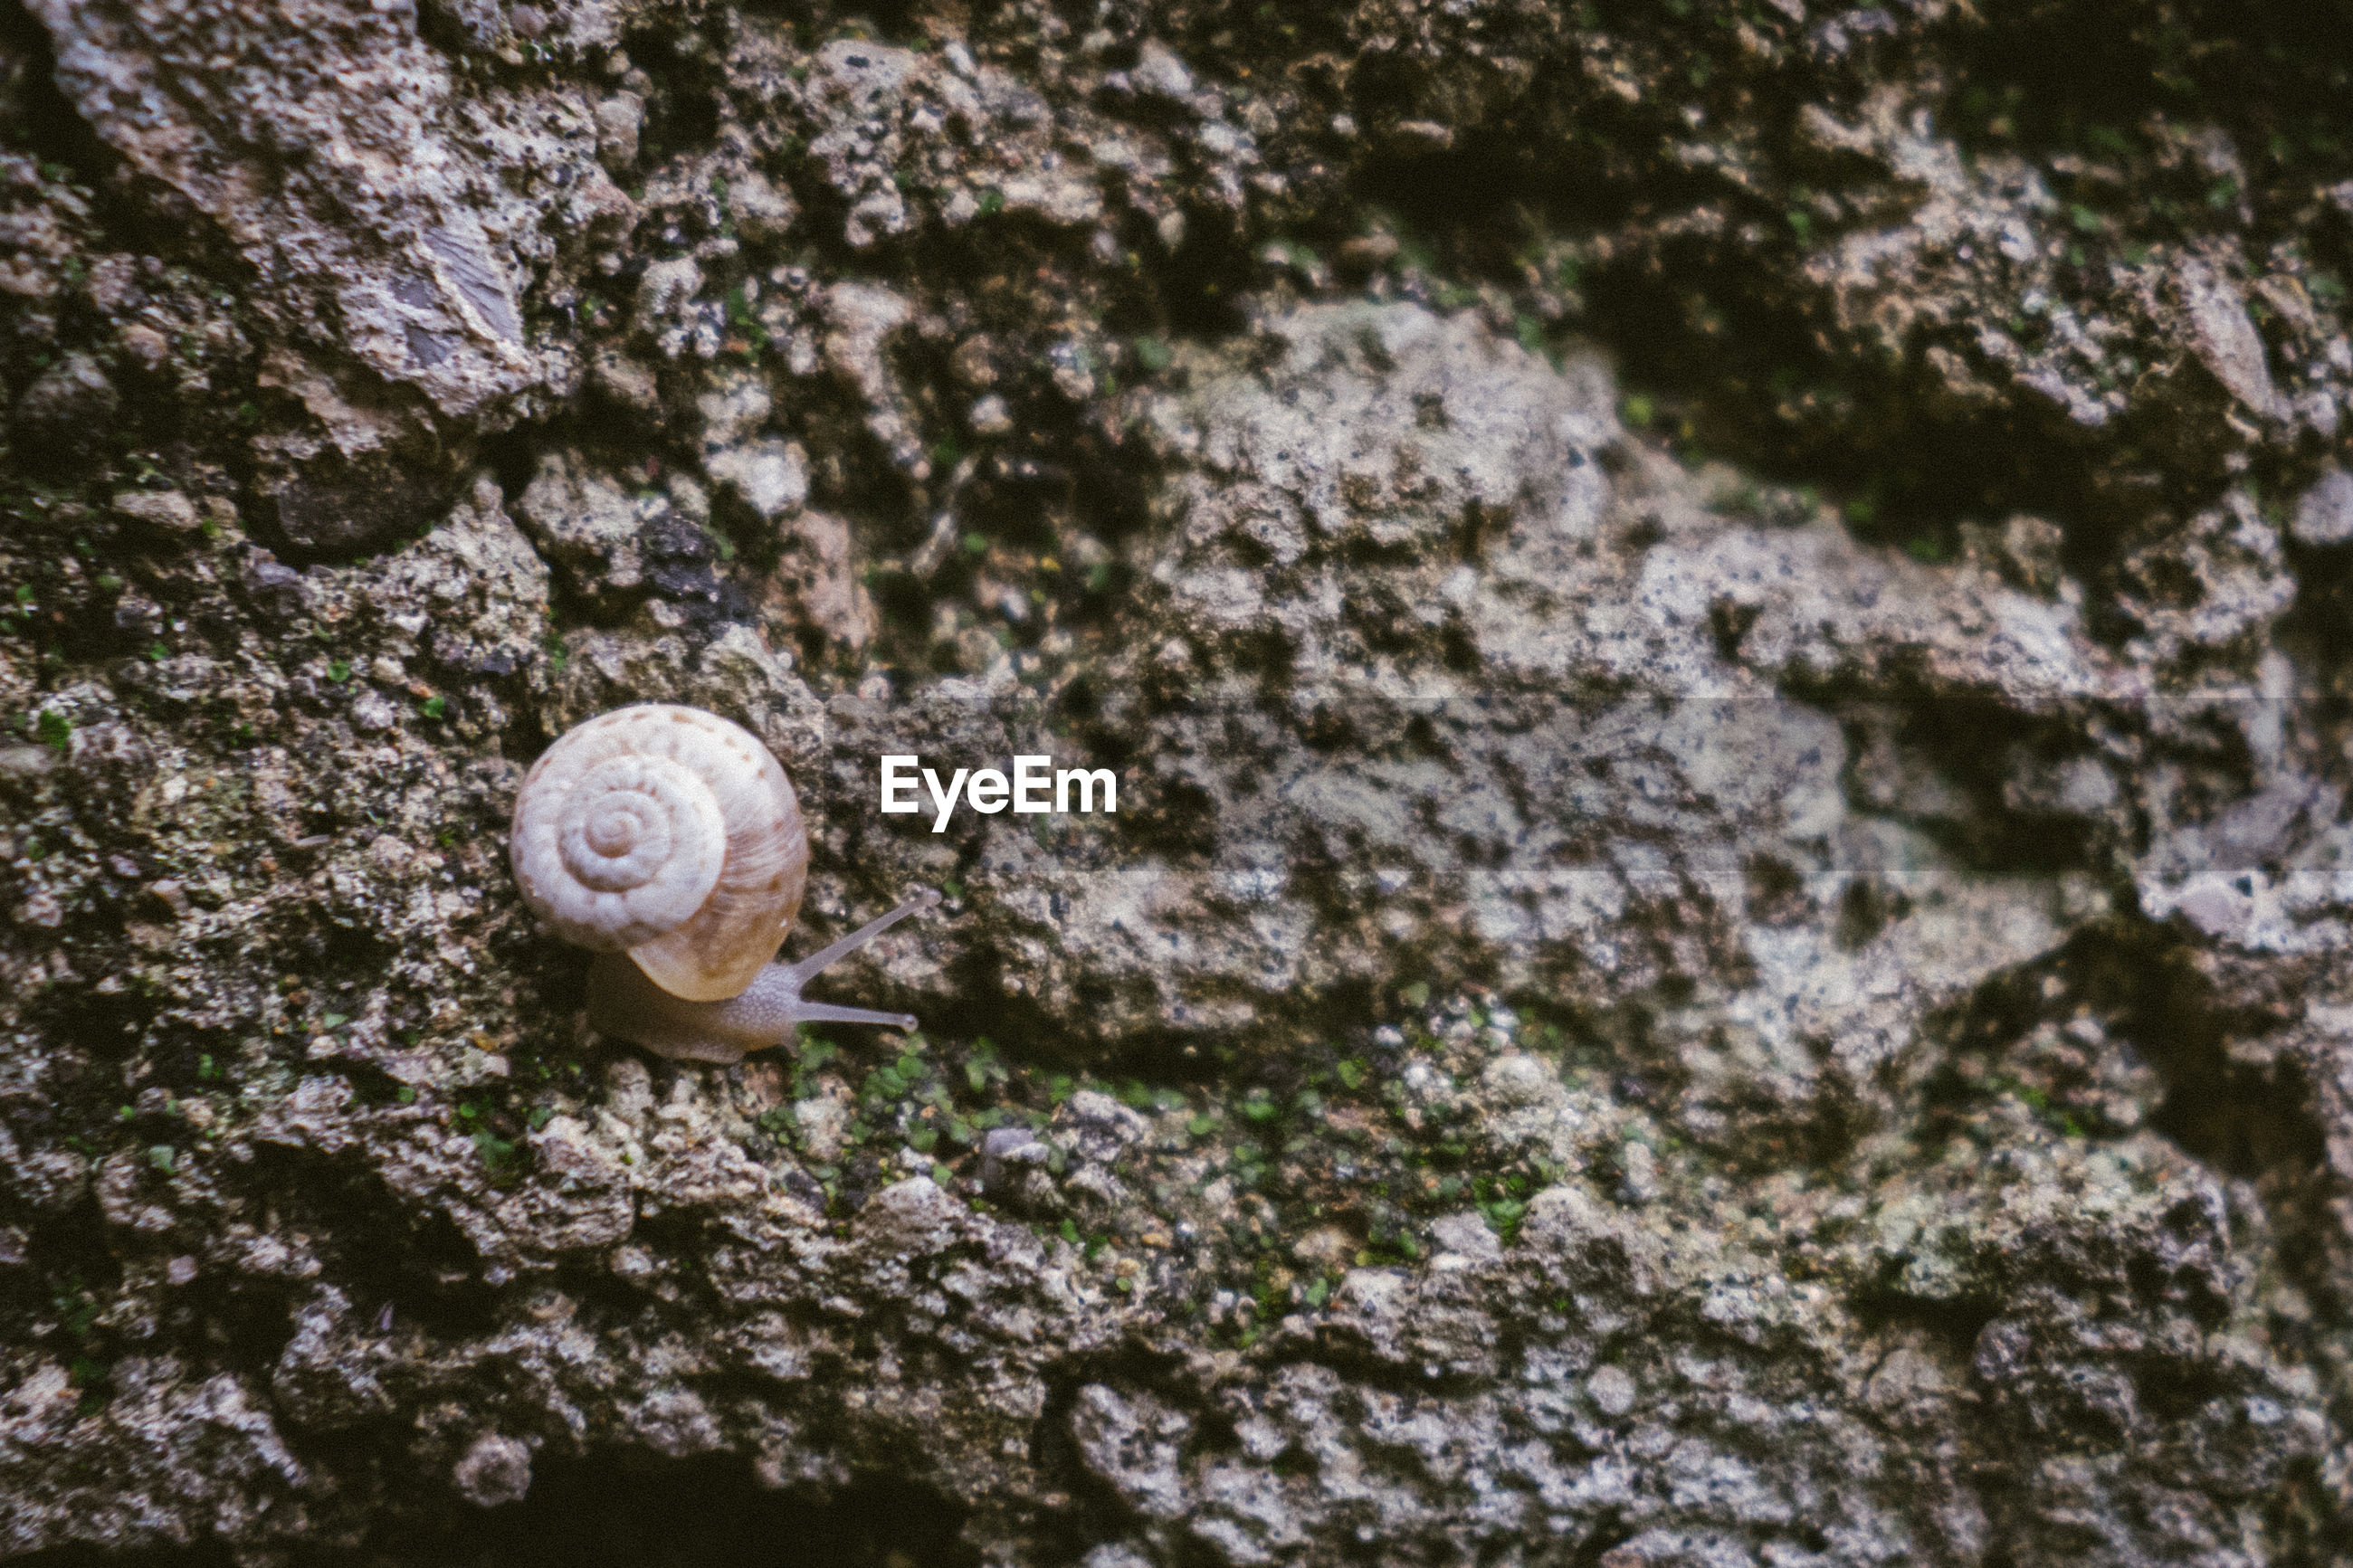 CLOSE-UP OF SNAIL IN ROCK